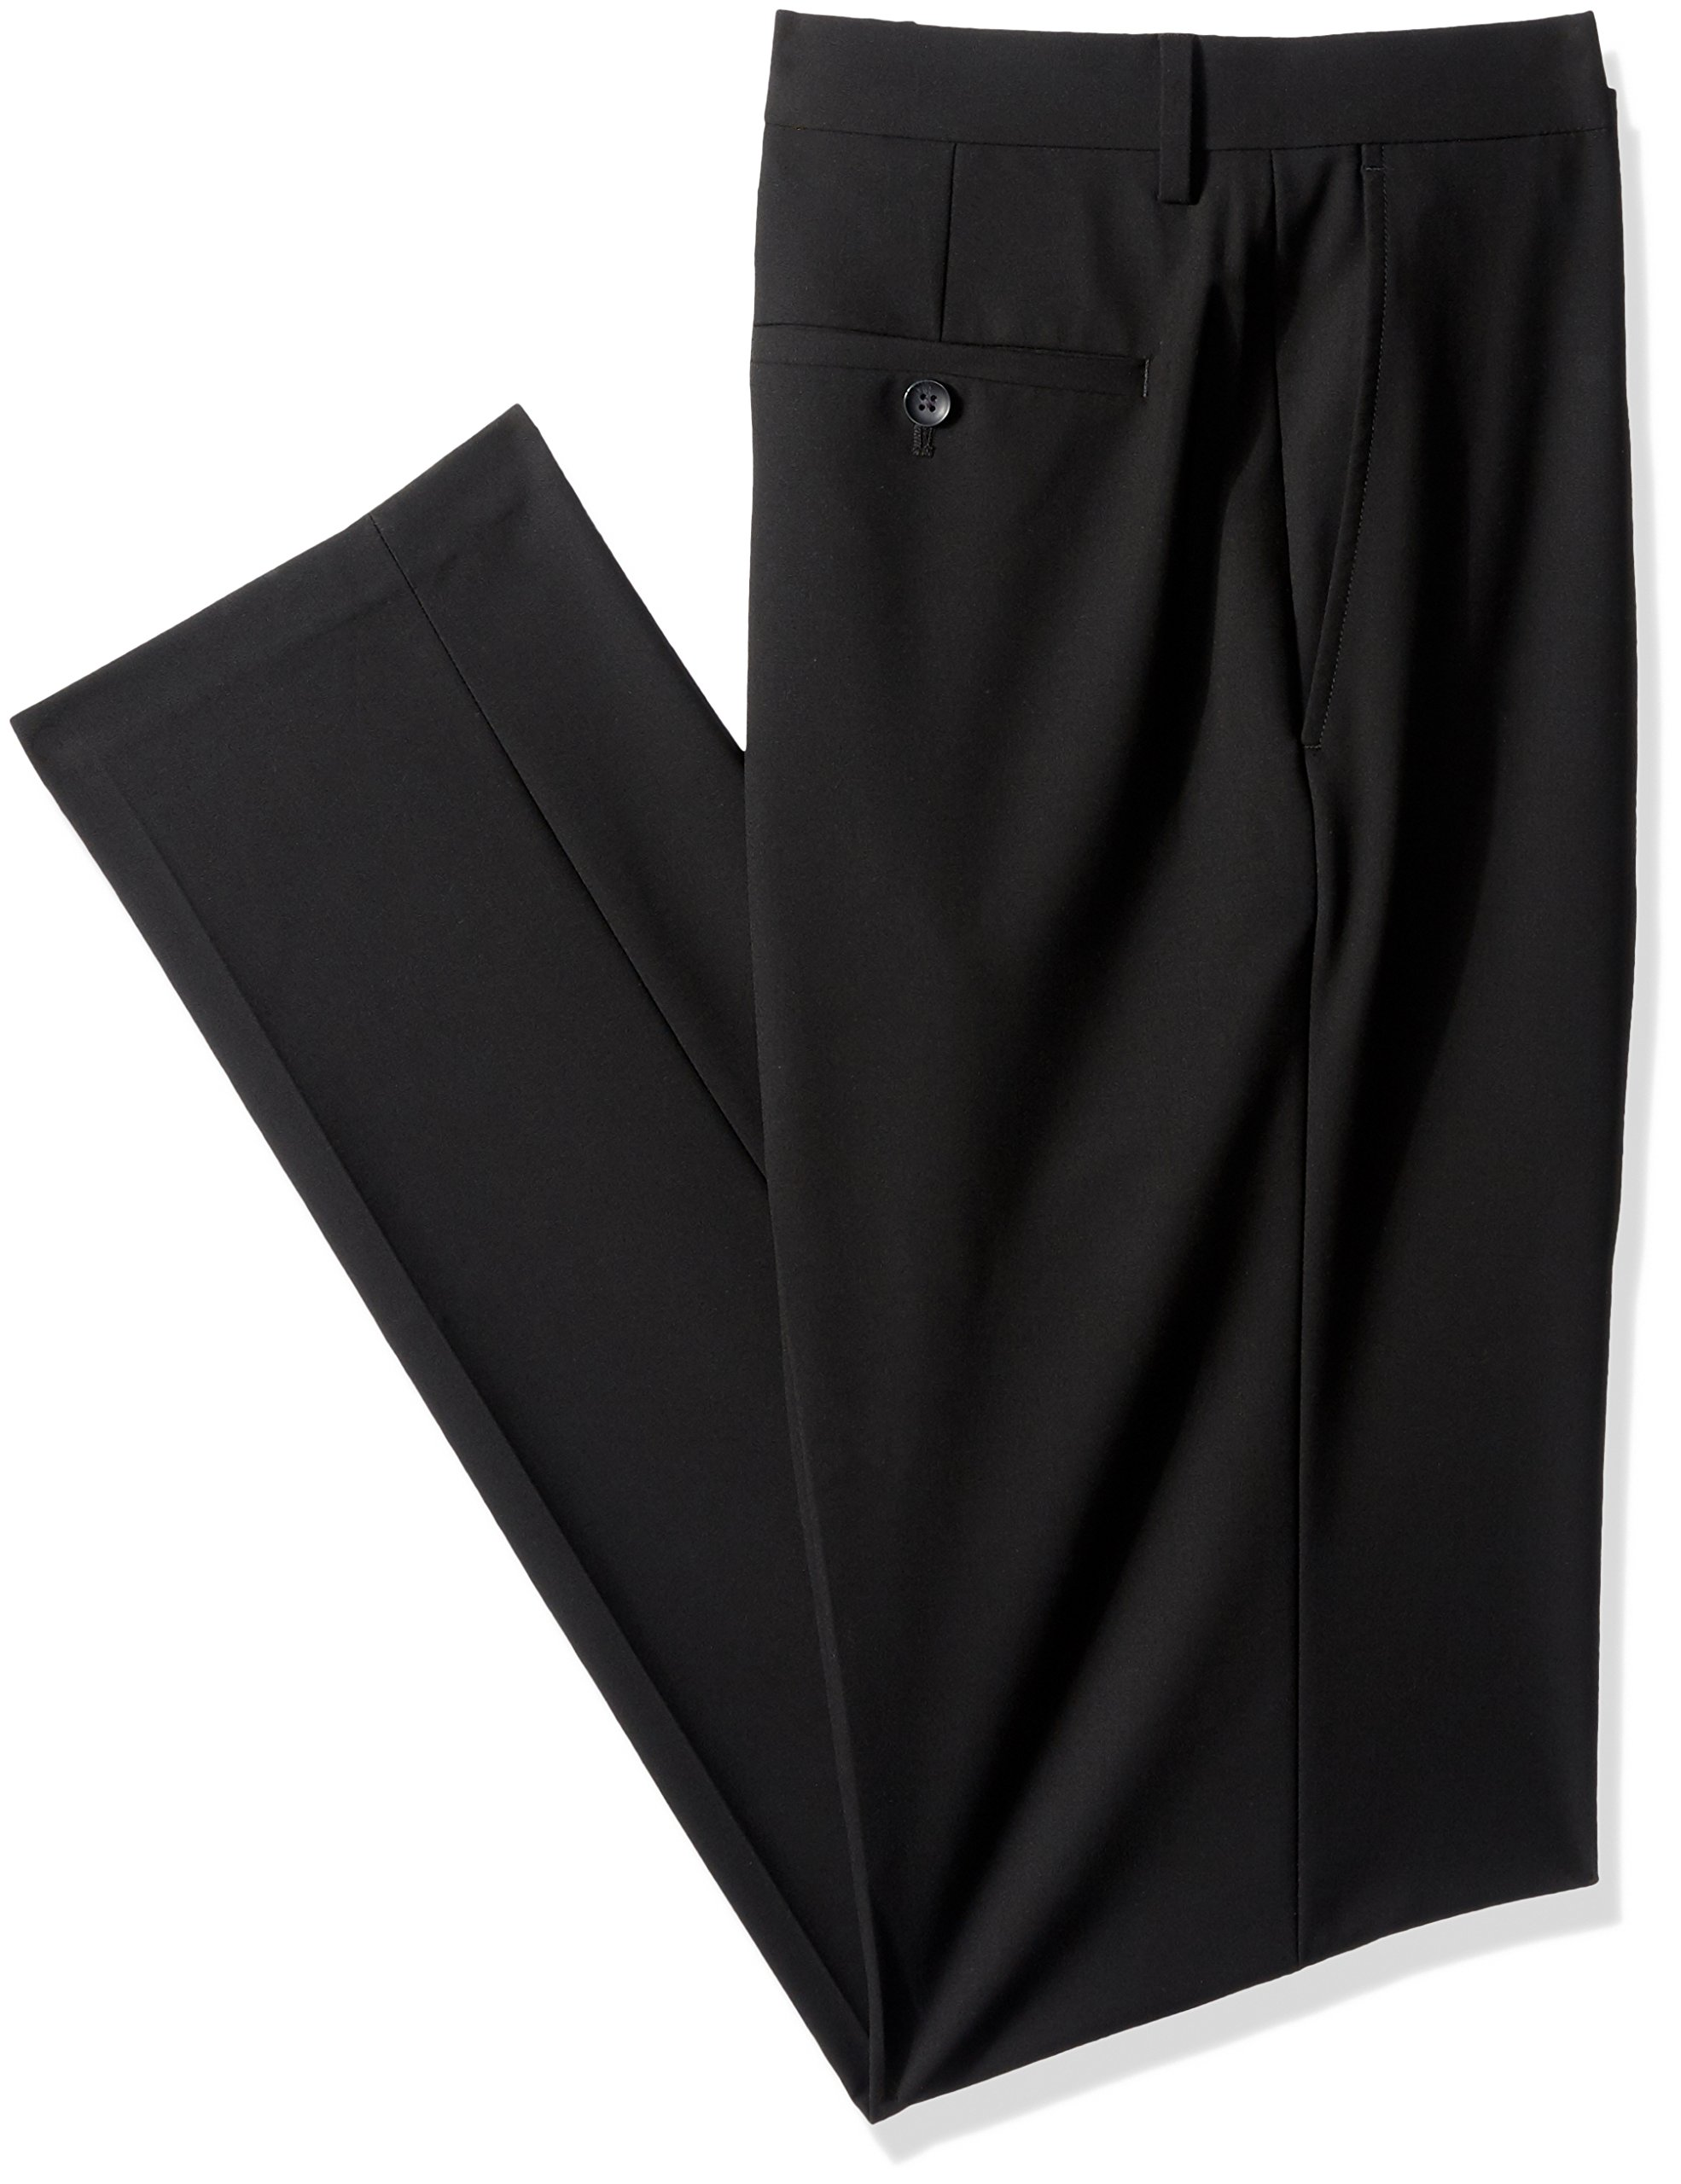 Haggar J.M 4-Way Stretch Solid Flat Front Slim Fit Suit Separate Pant, Black, 36Wx36L by Haggar